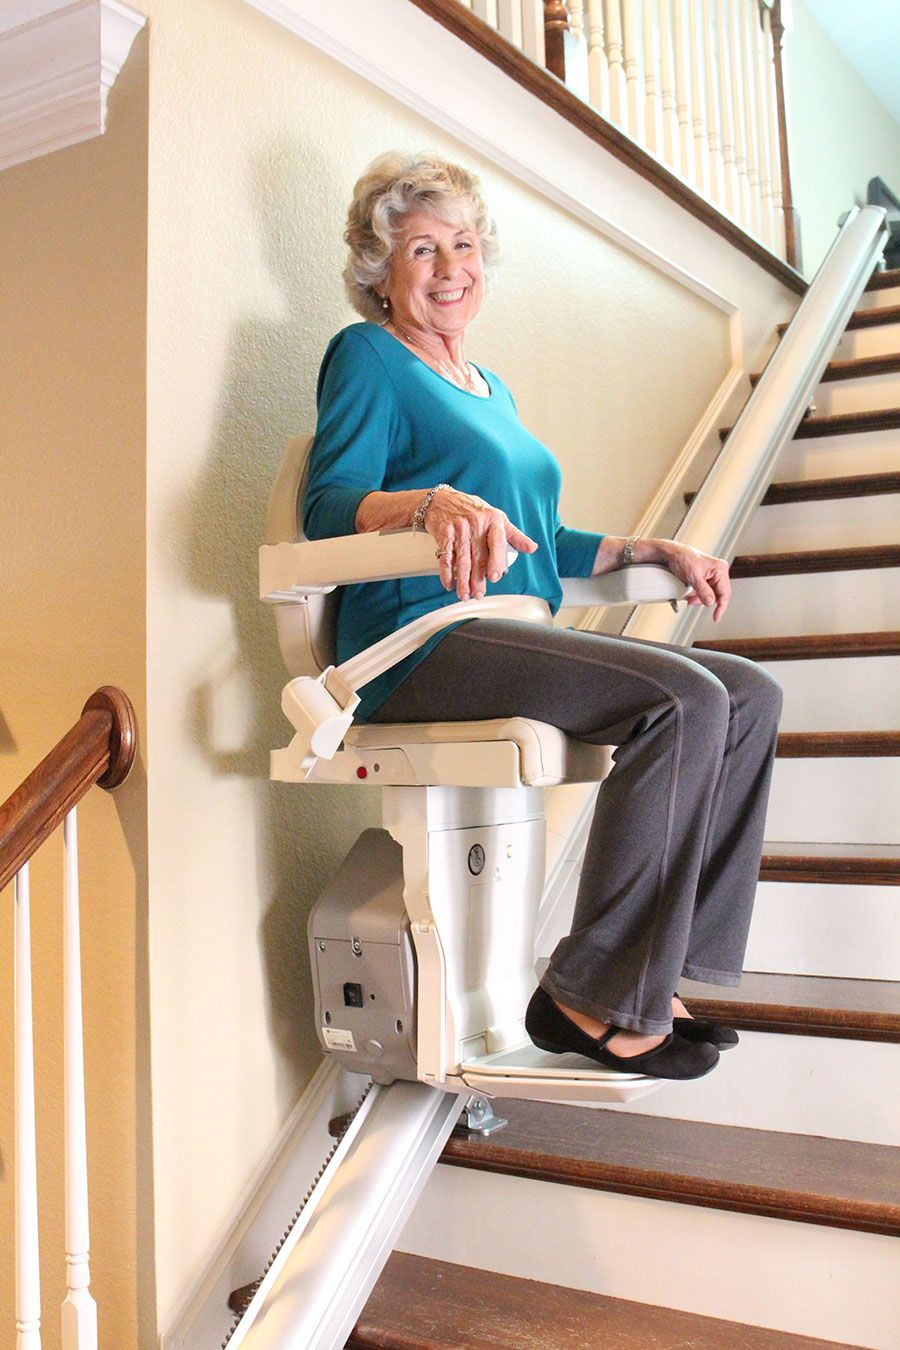 Easy Climber Stair Lifts   Remain Happy And Safe In Your Home With The Easy  Climber Stair Lift!   Http://www.easyclimber.com/